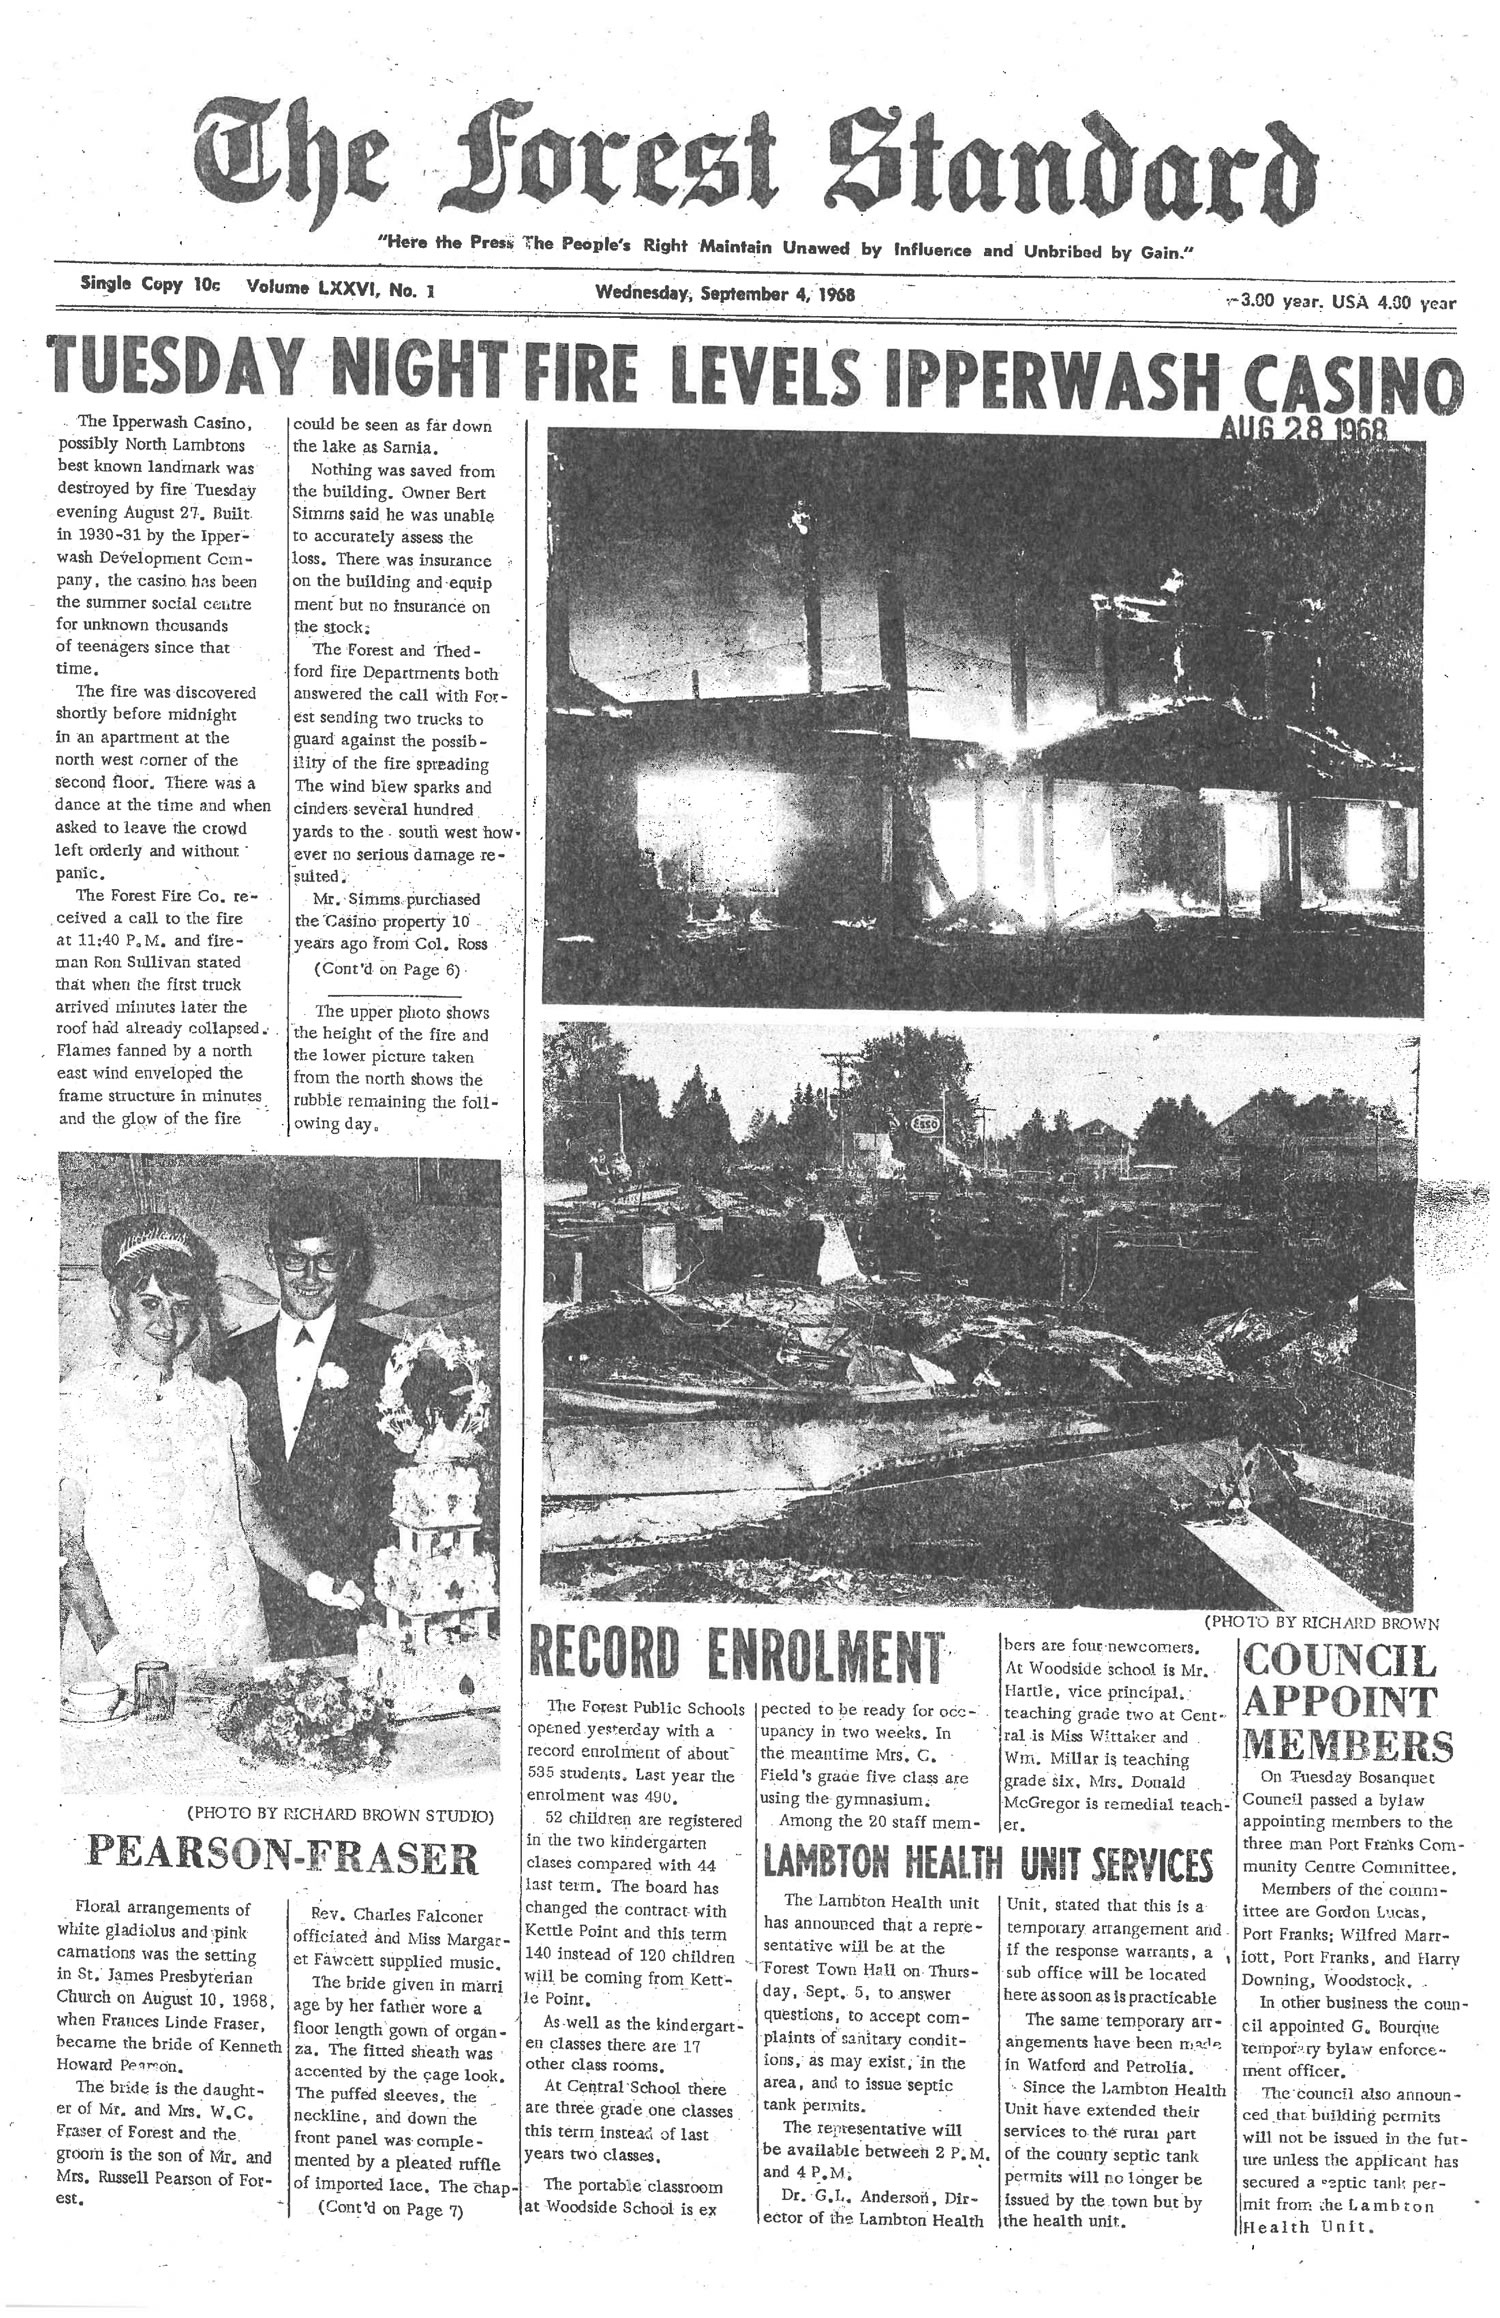 Newspaper - front page Ipperwash Casino Fire